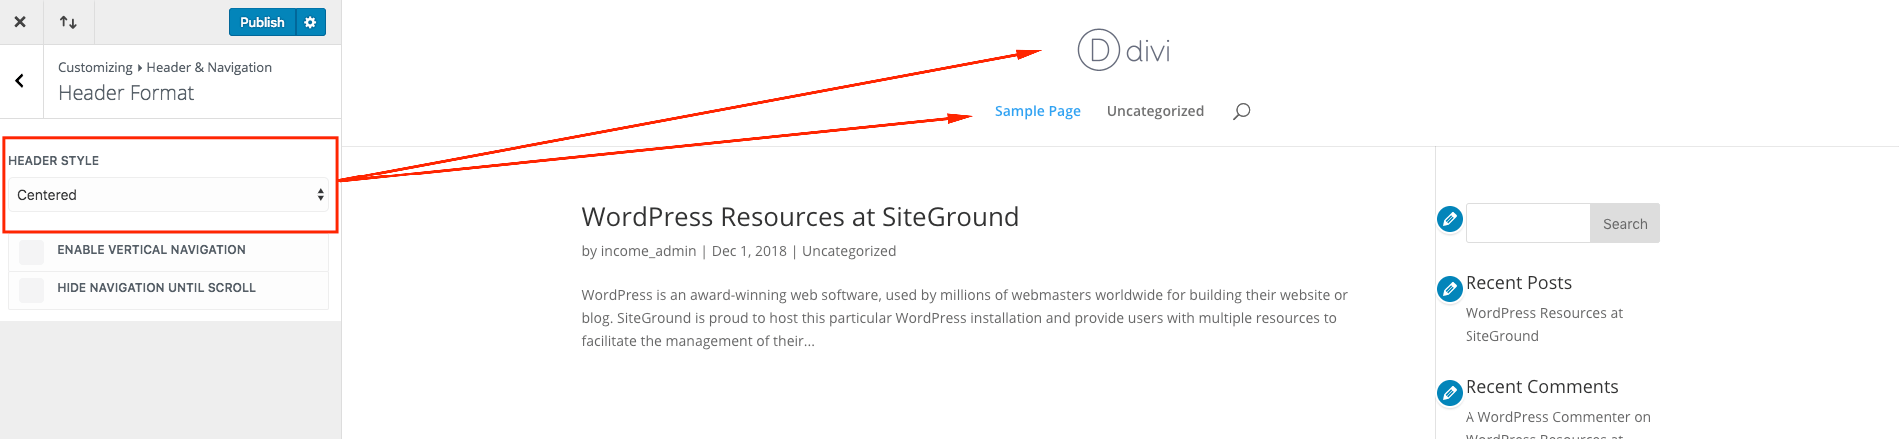 Divi Theme Review - The Best Page Builders To Date